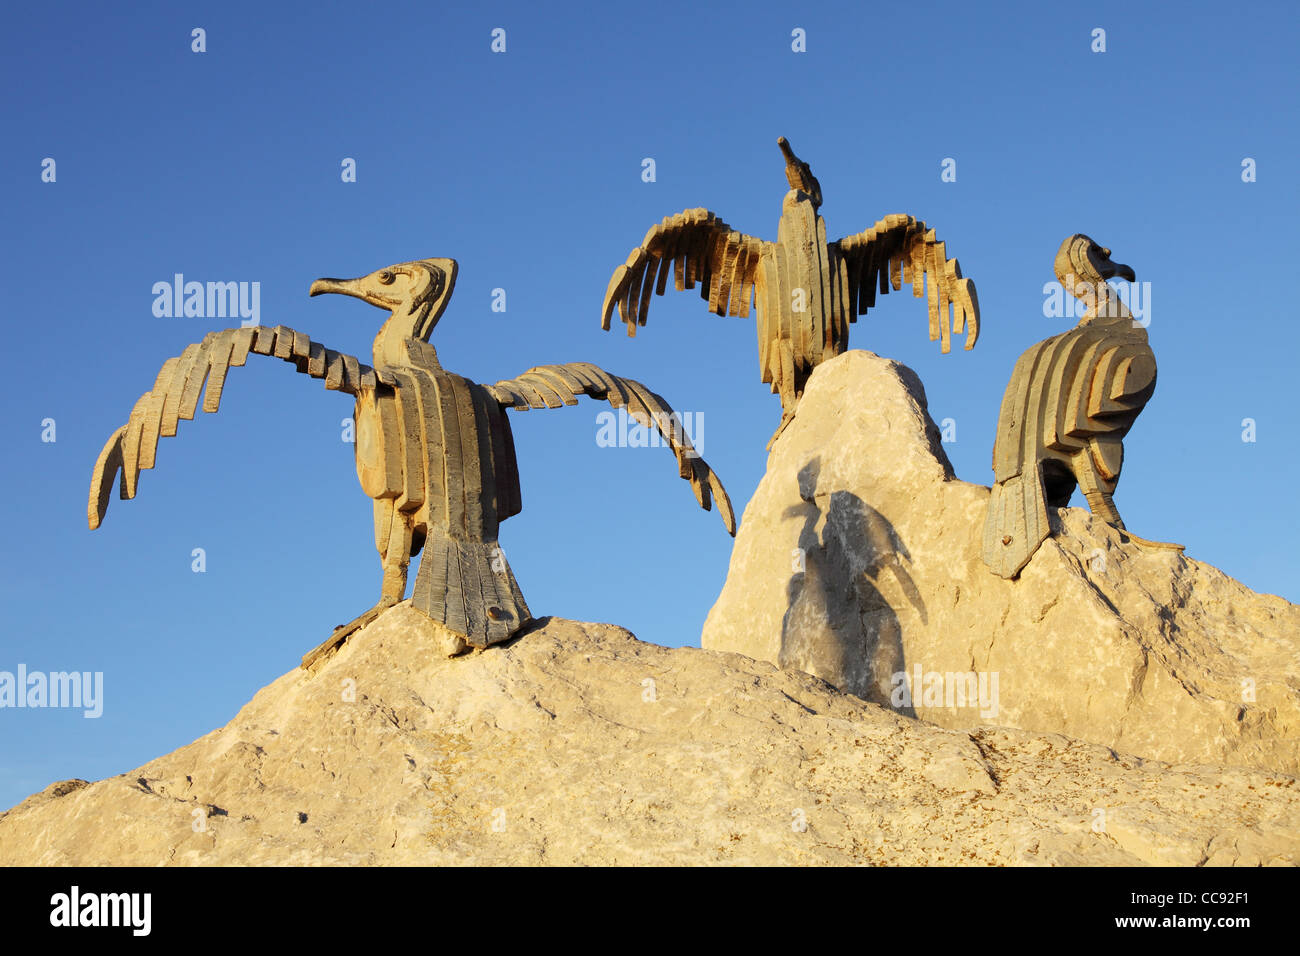 The Tern Project, metal cormorants sculpted by Brian Fell, Morecambe, north west England, UK - Stock Image